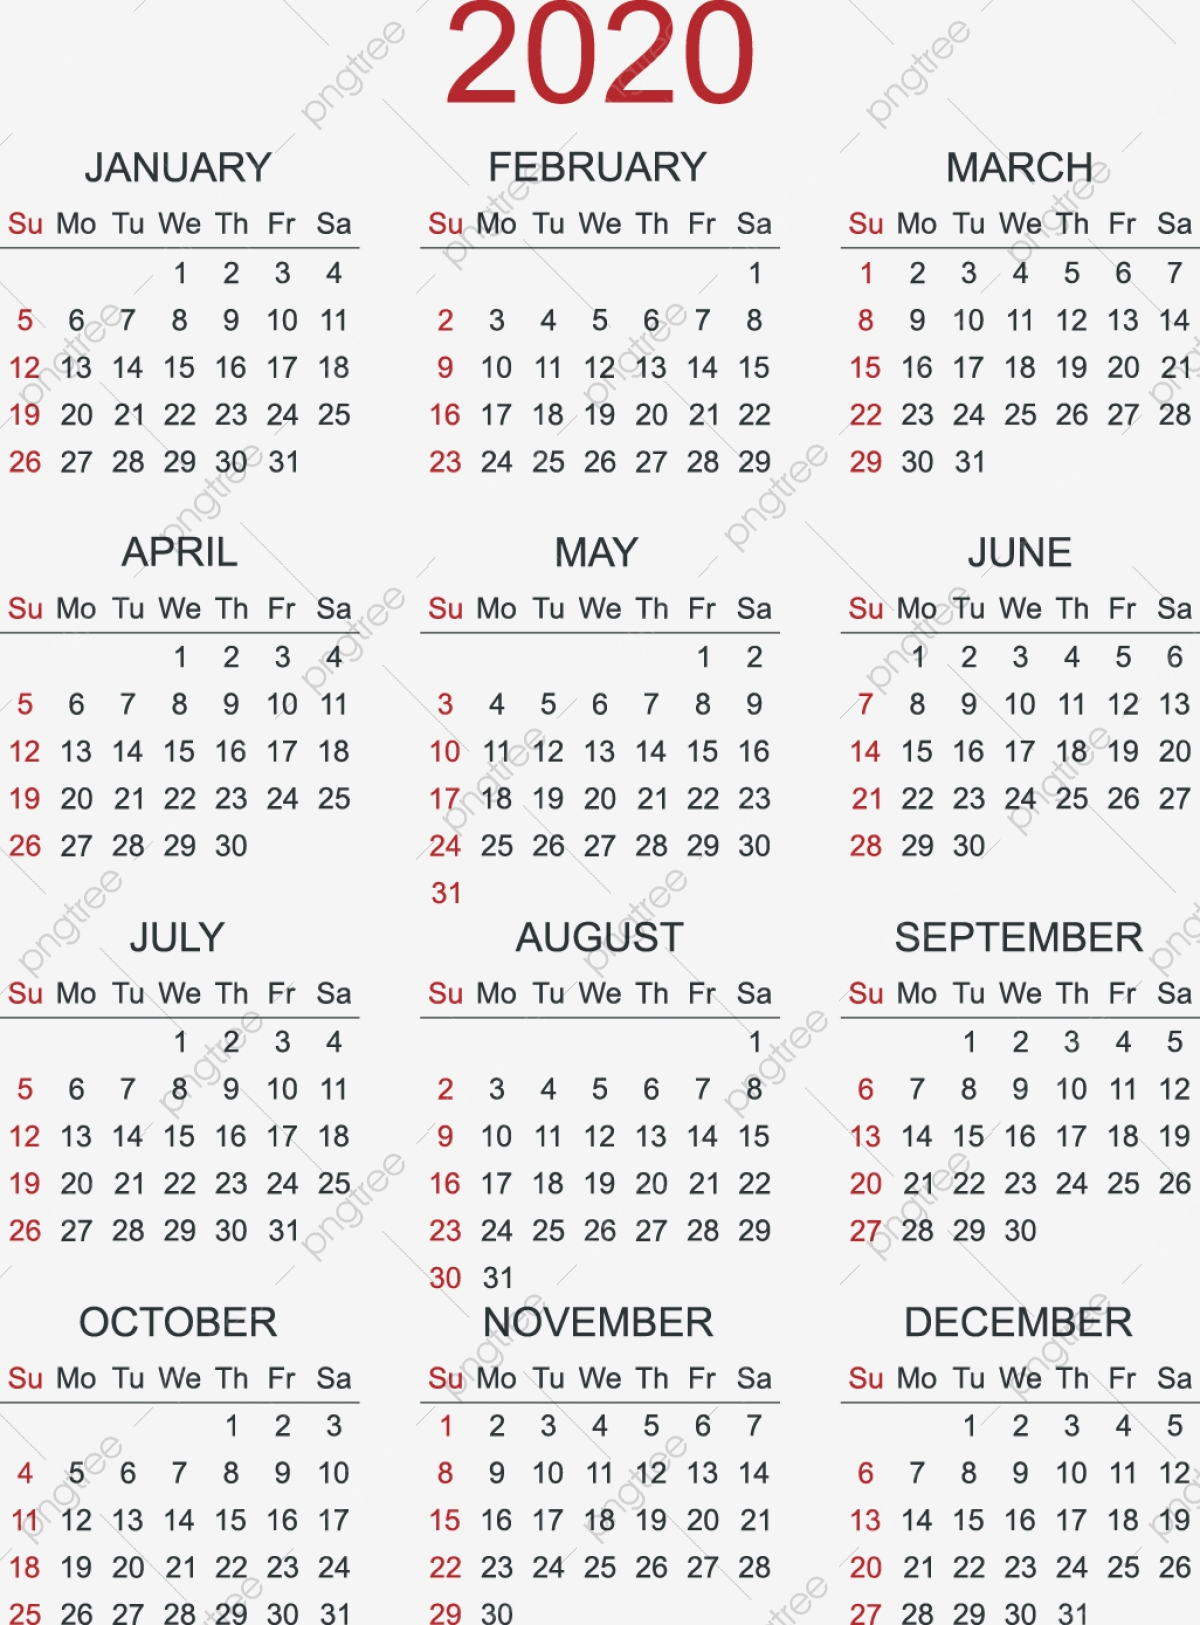 2020 Calendar Calendar 2020 Calendar Calendar 2020 Calendar within 11 X 8.5 Calendar Pages 2020 Free